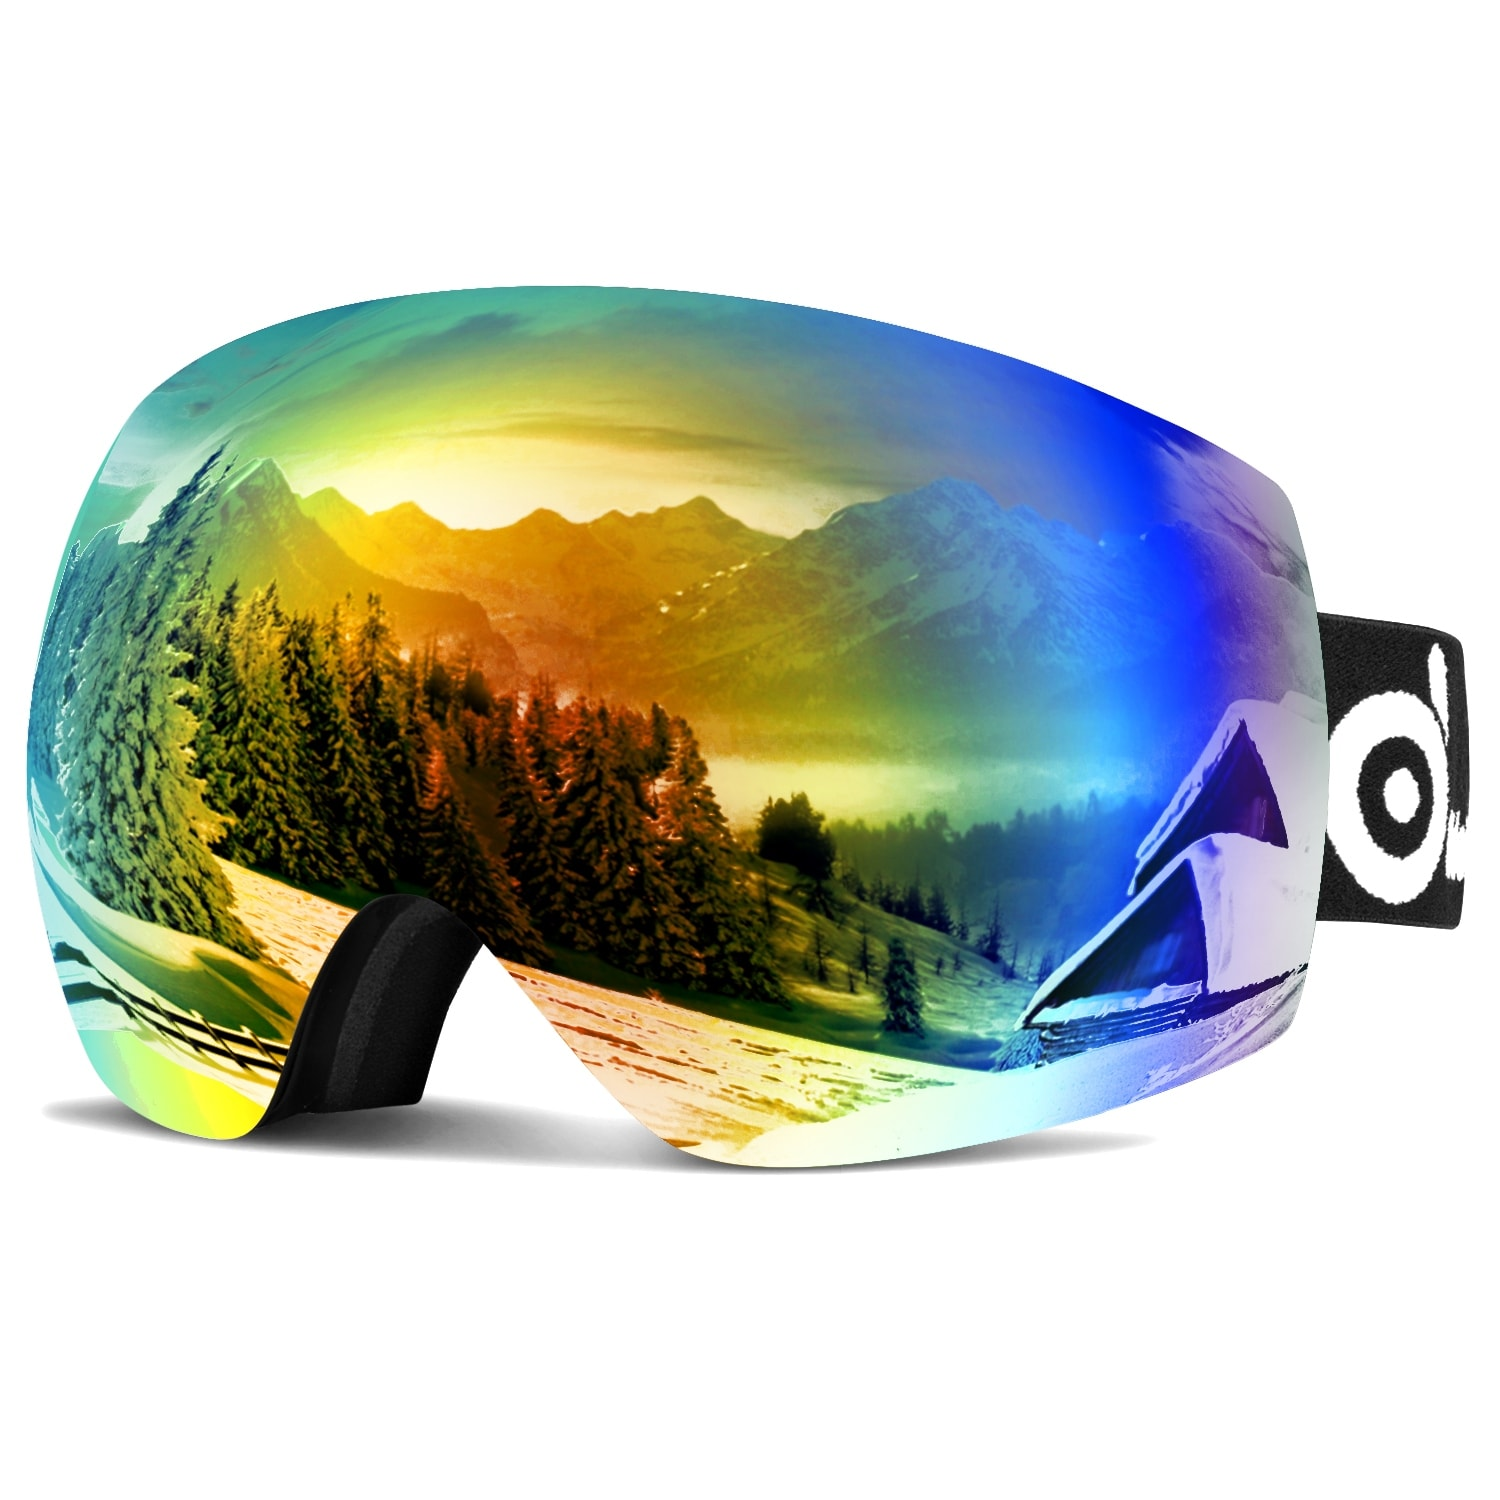 6087799464cc Odoland Large Spherical Frameless Ski Goggles for Men Women S2 OTG Double  Lens UV400 Protection Anti-Fogging